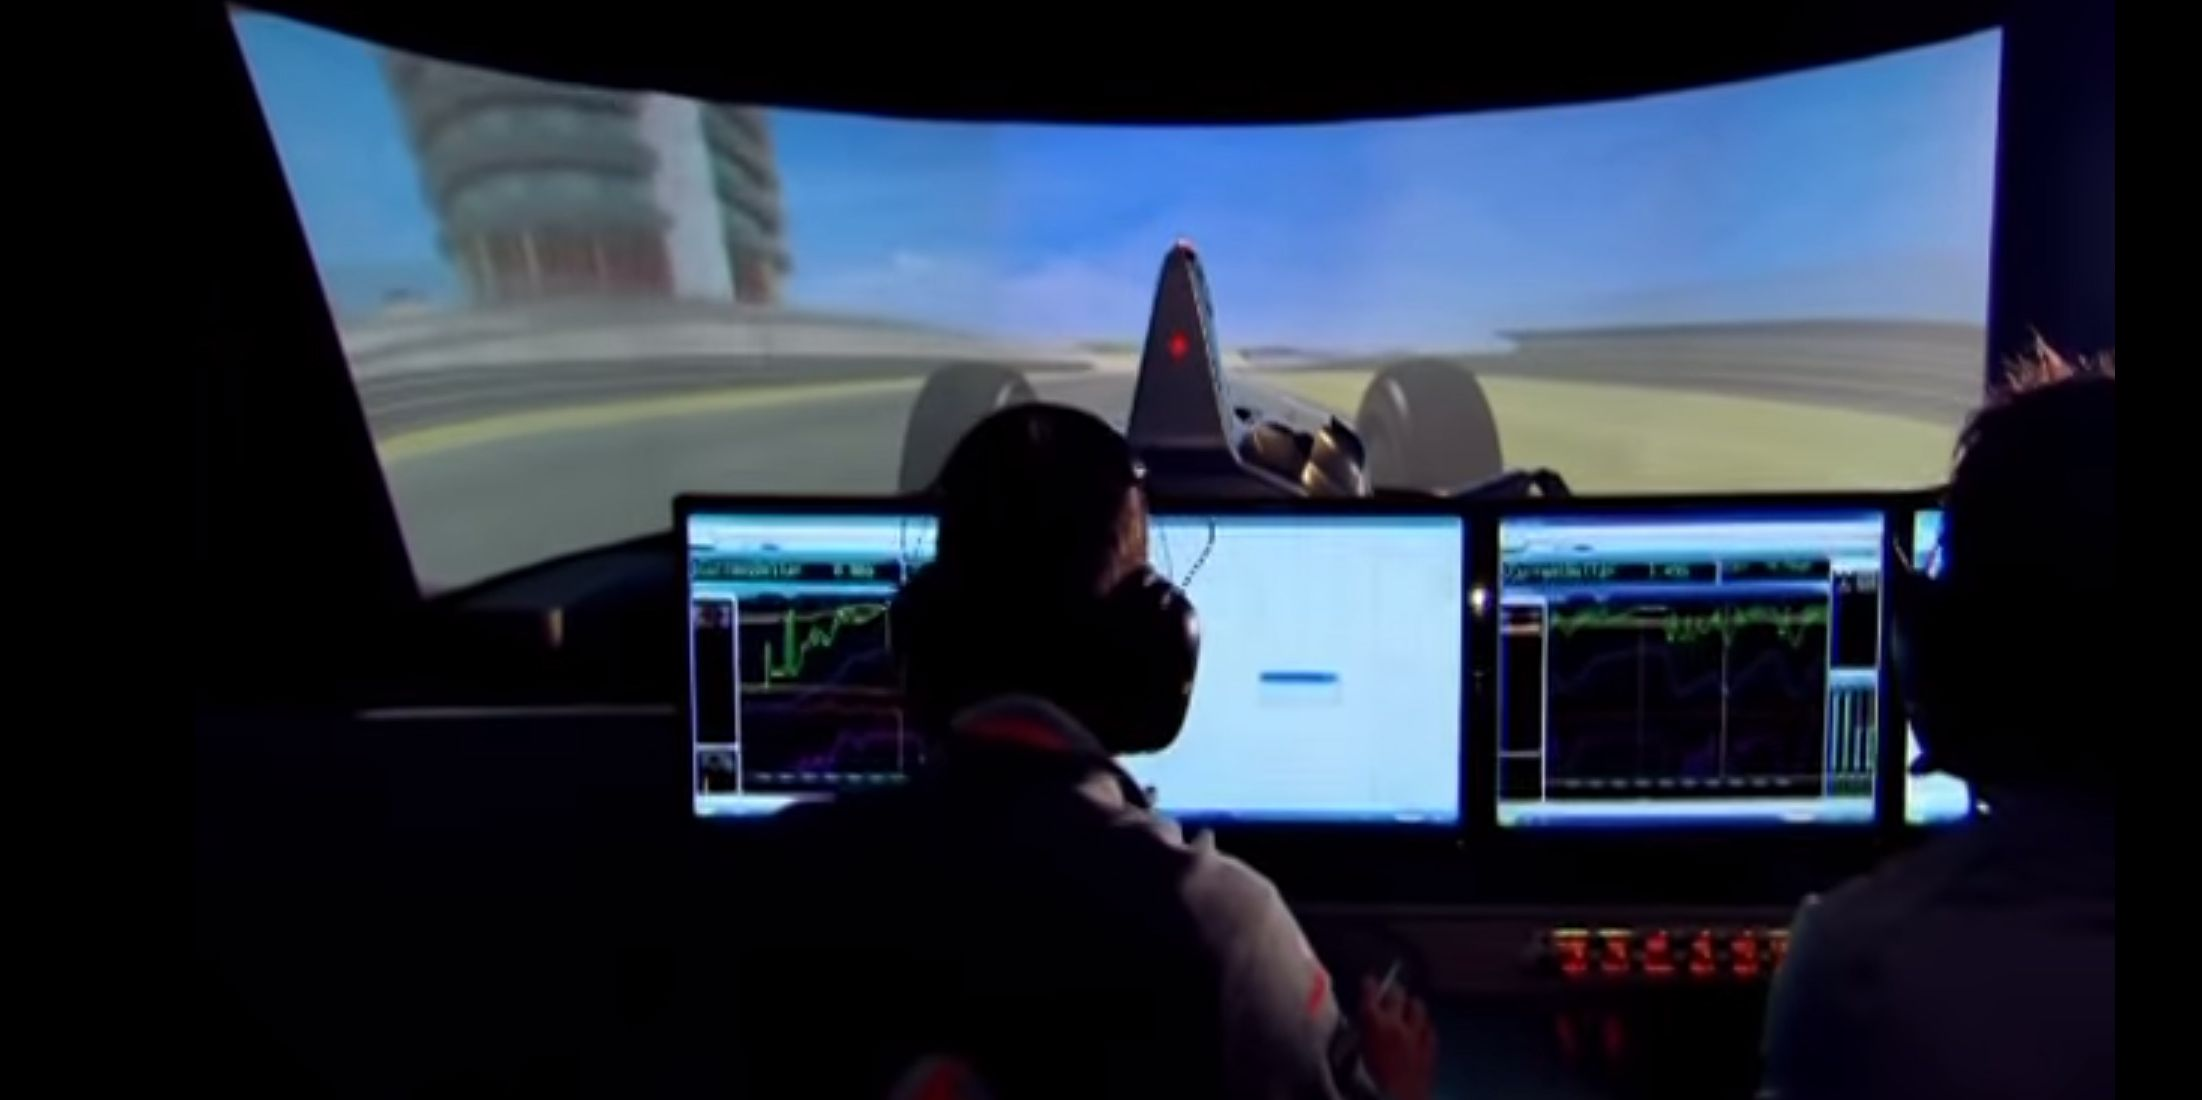 mclaren's incredible formula 1 simulator as demonstratedfernando